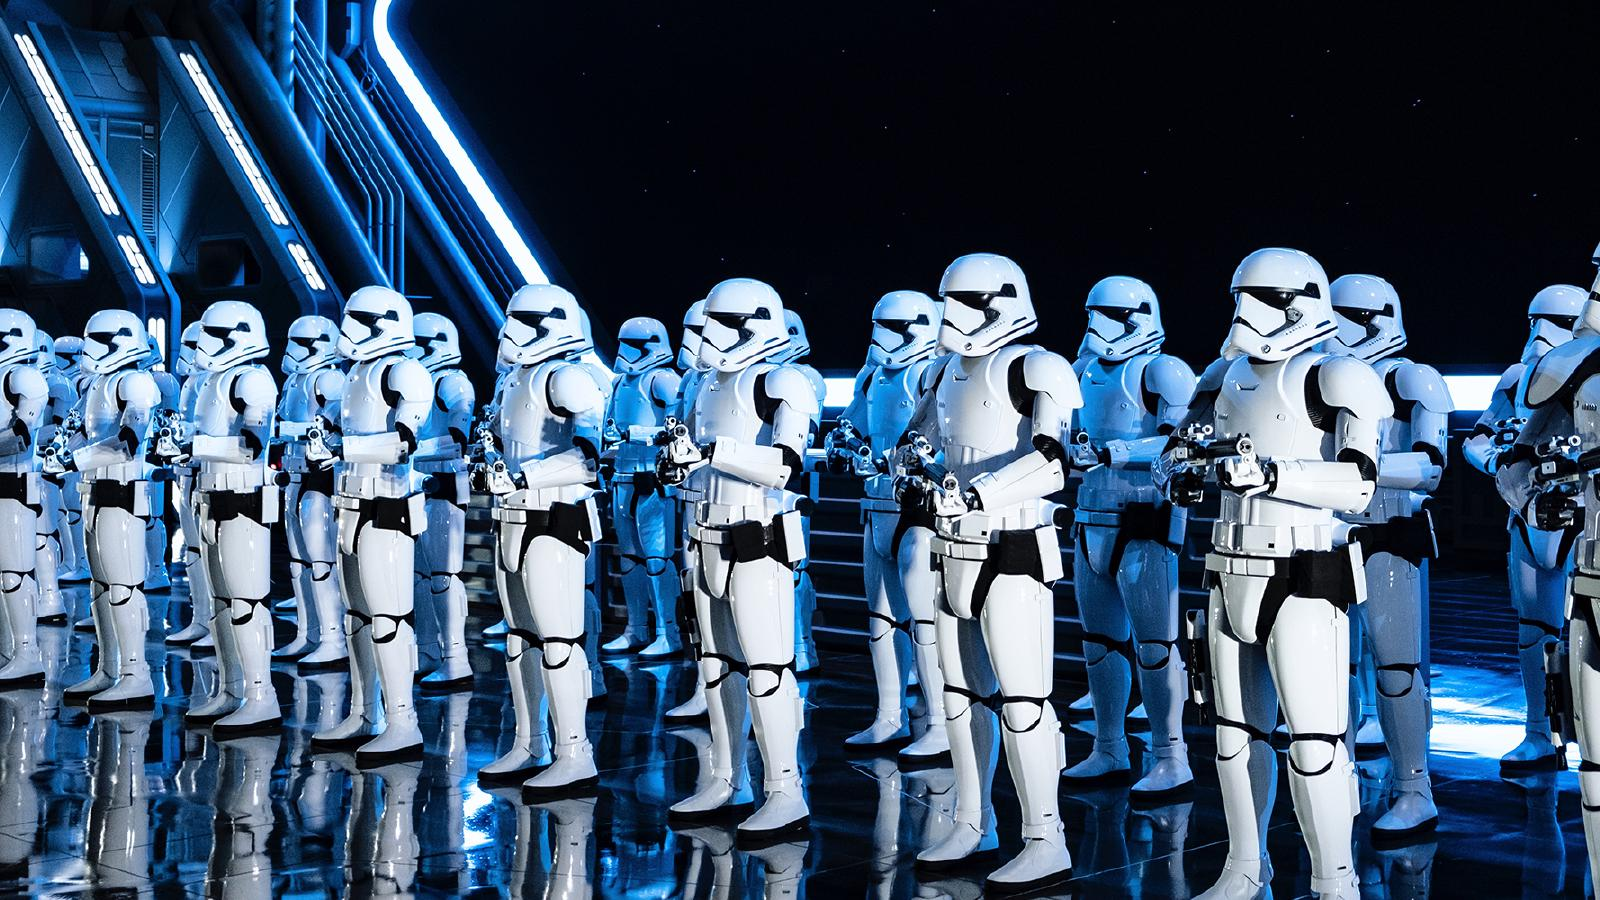 The Ultimate Star Wars Drinking Game Rules Guide